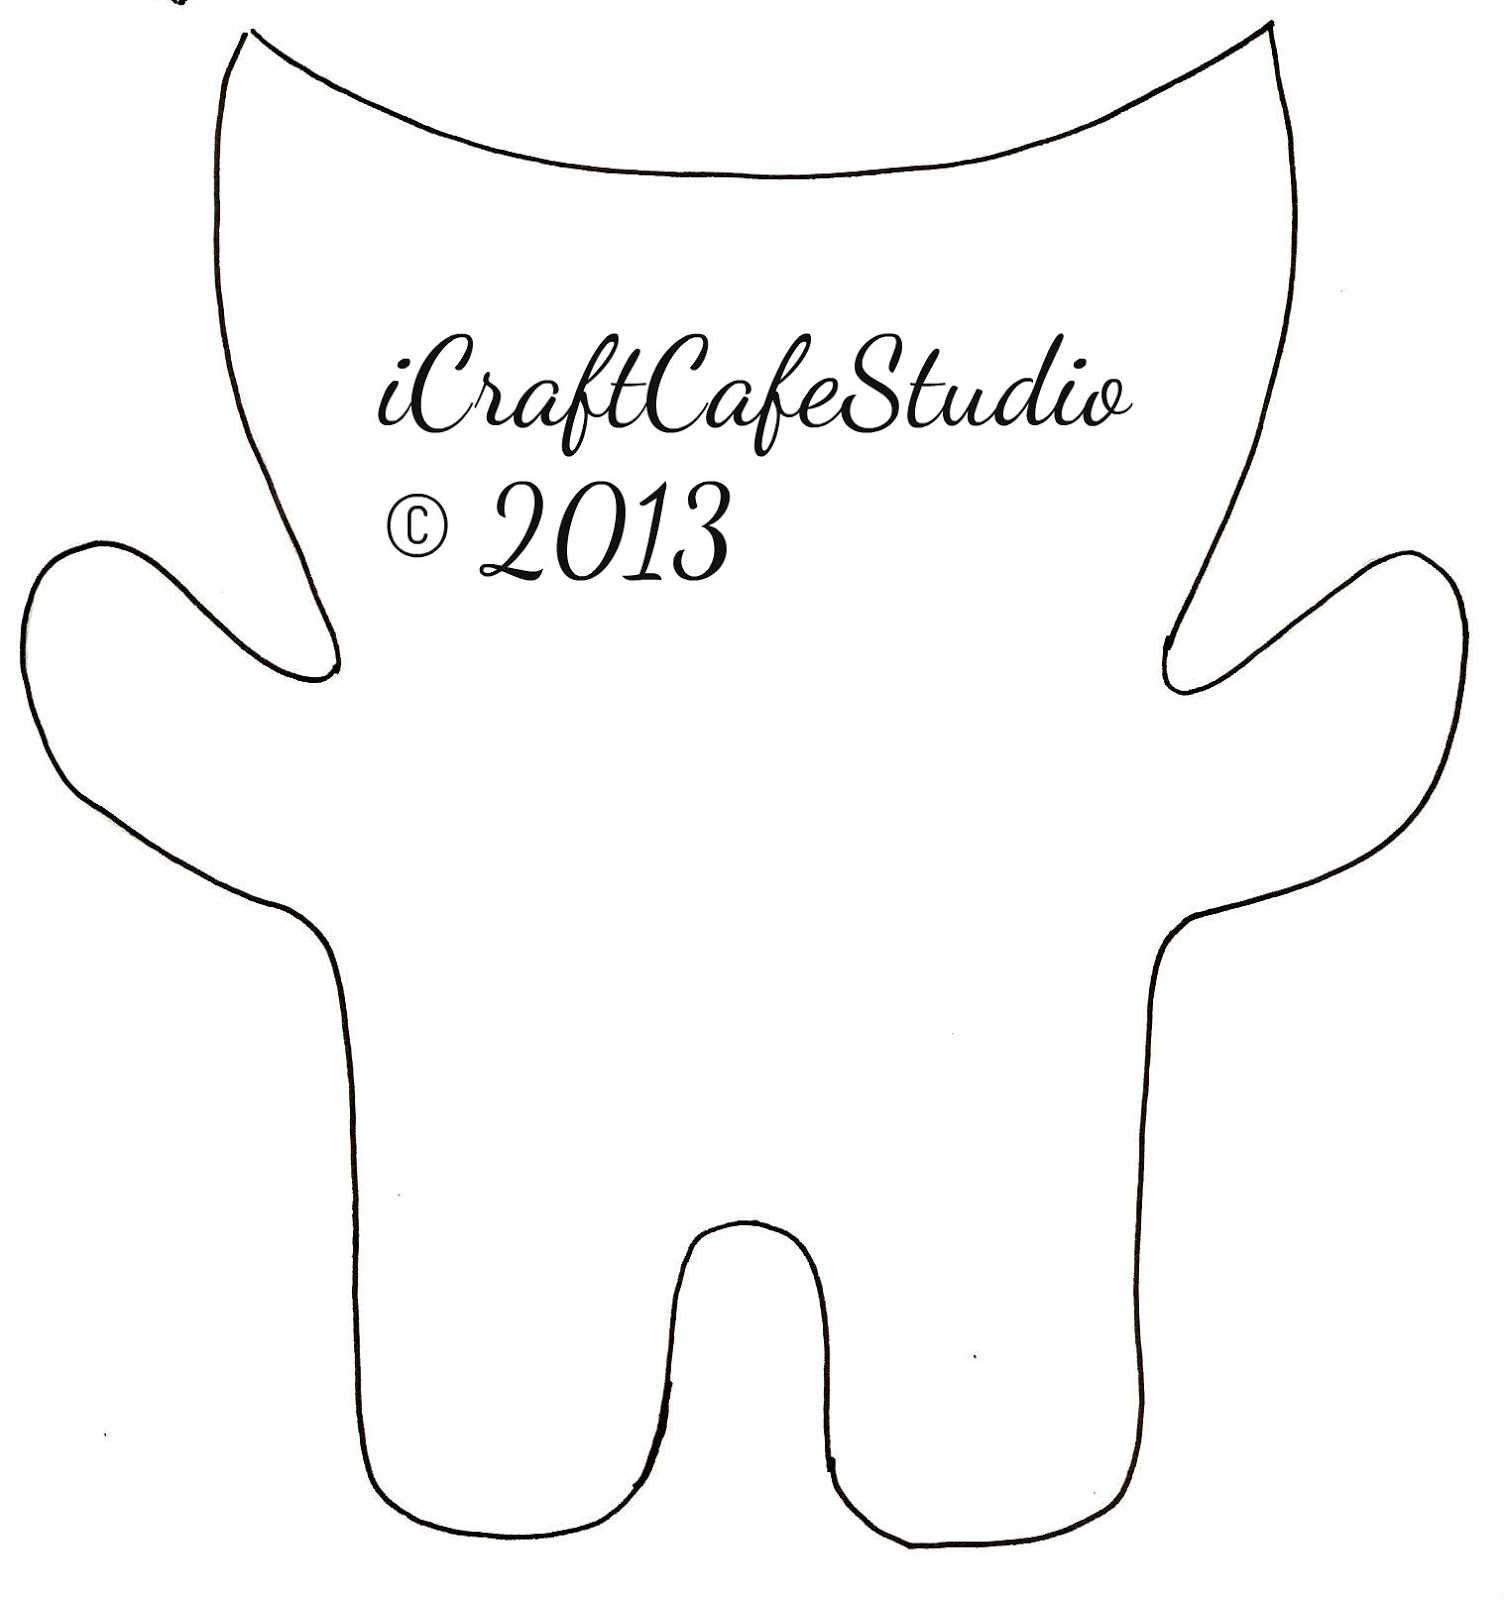 template monstre - icraftcaf studio felt monsters